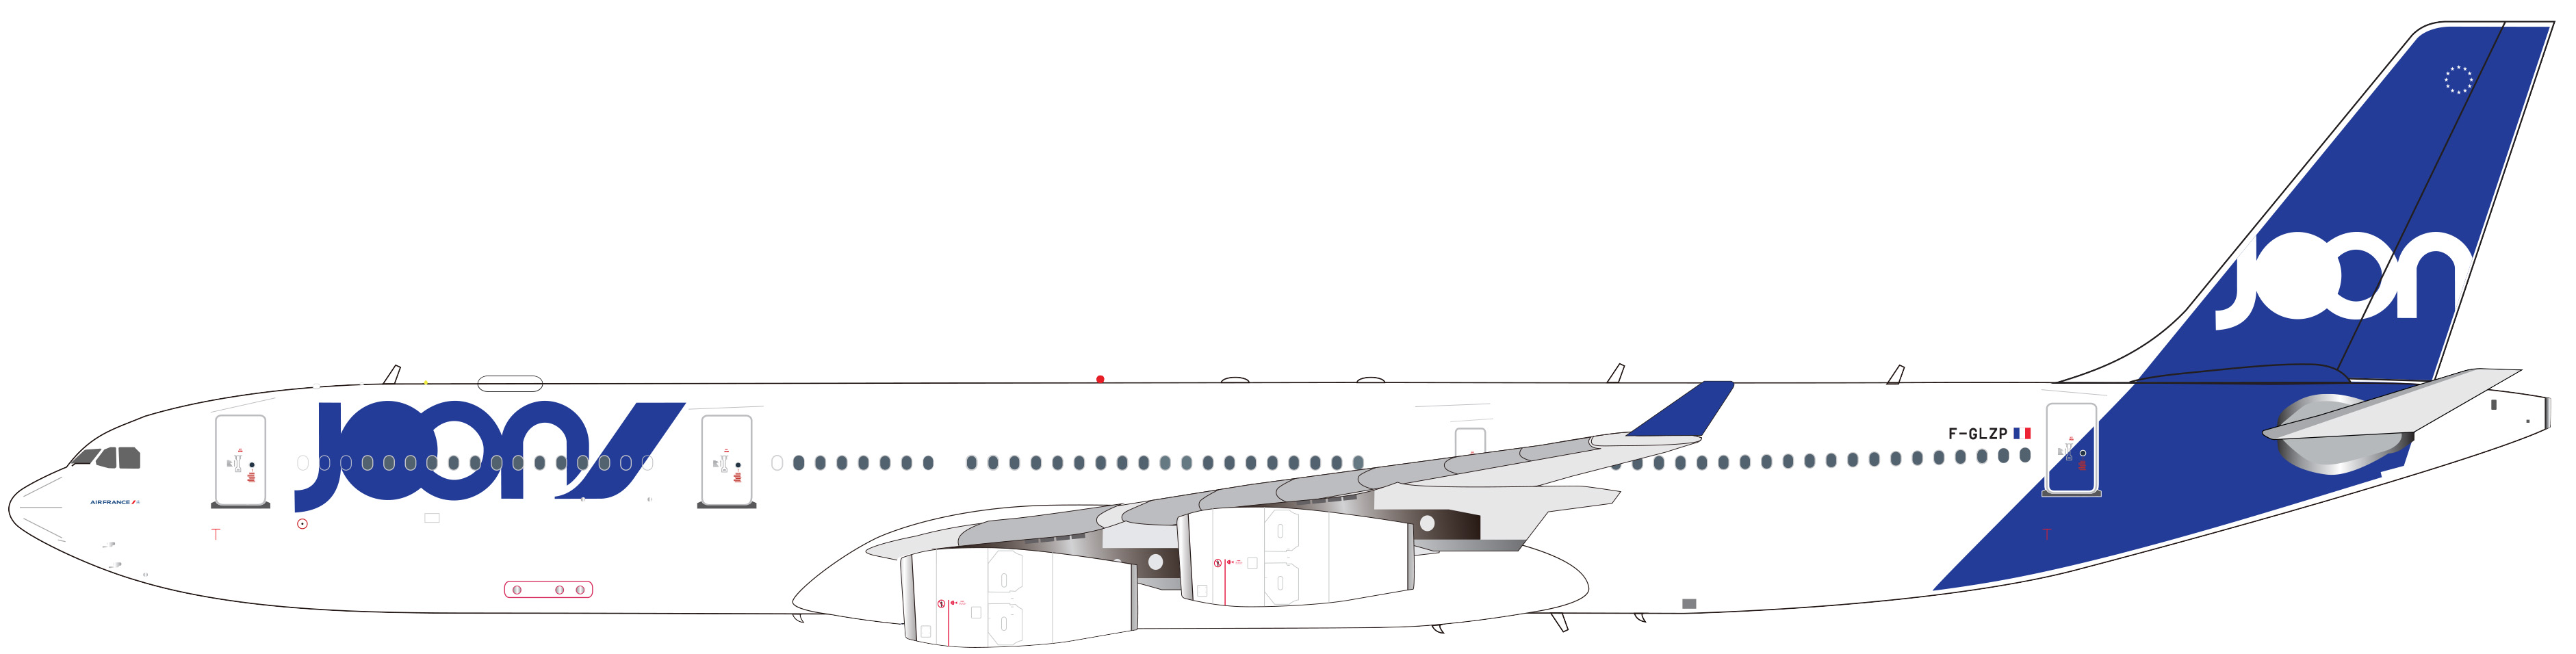 A340-300_JOON-4.png